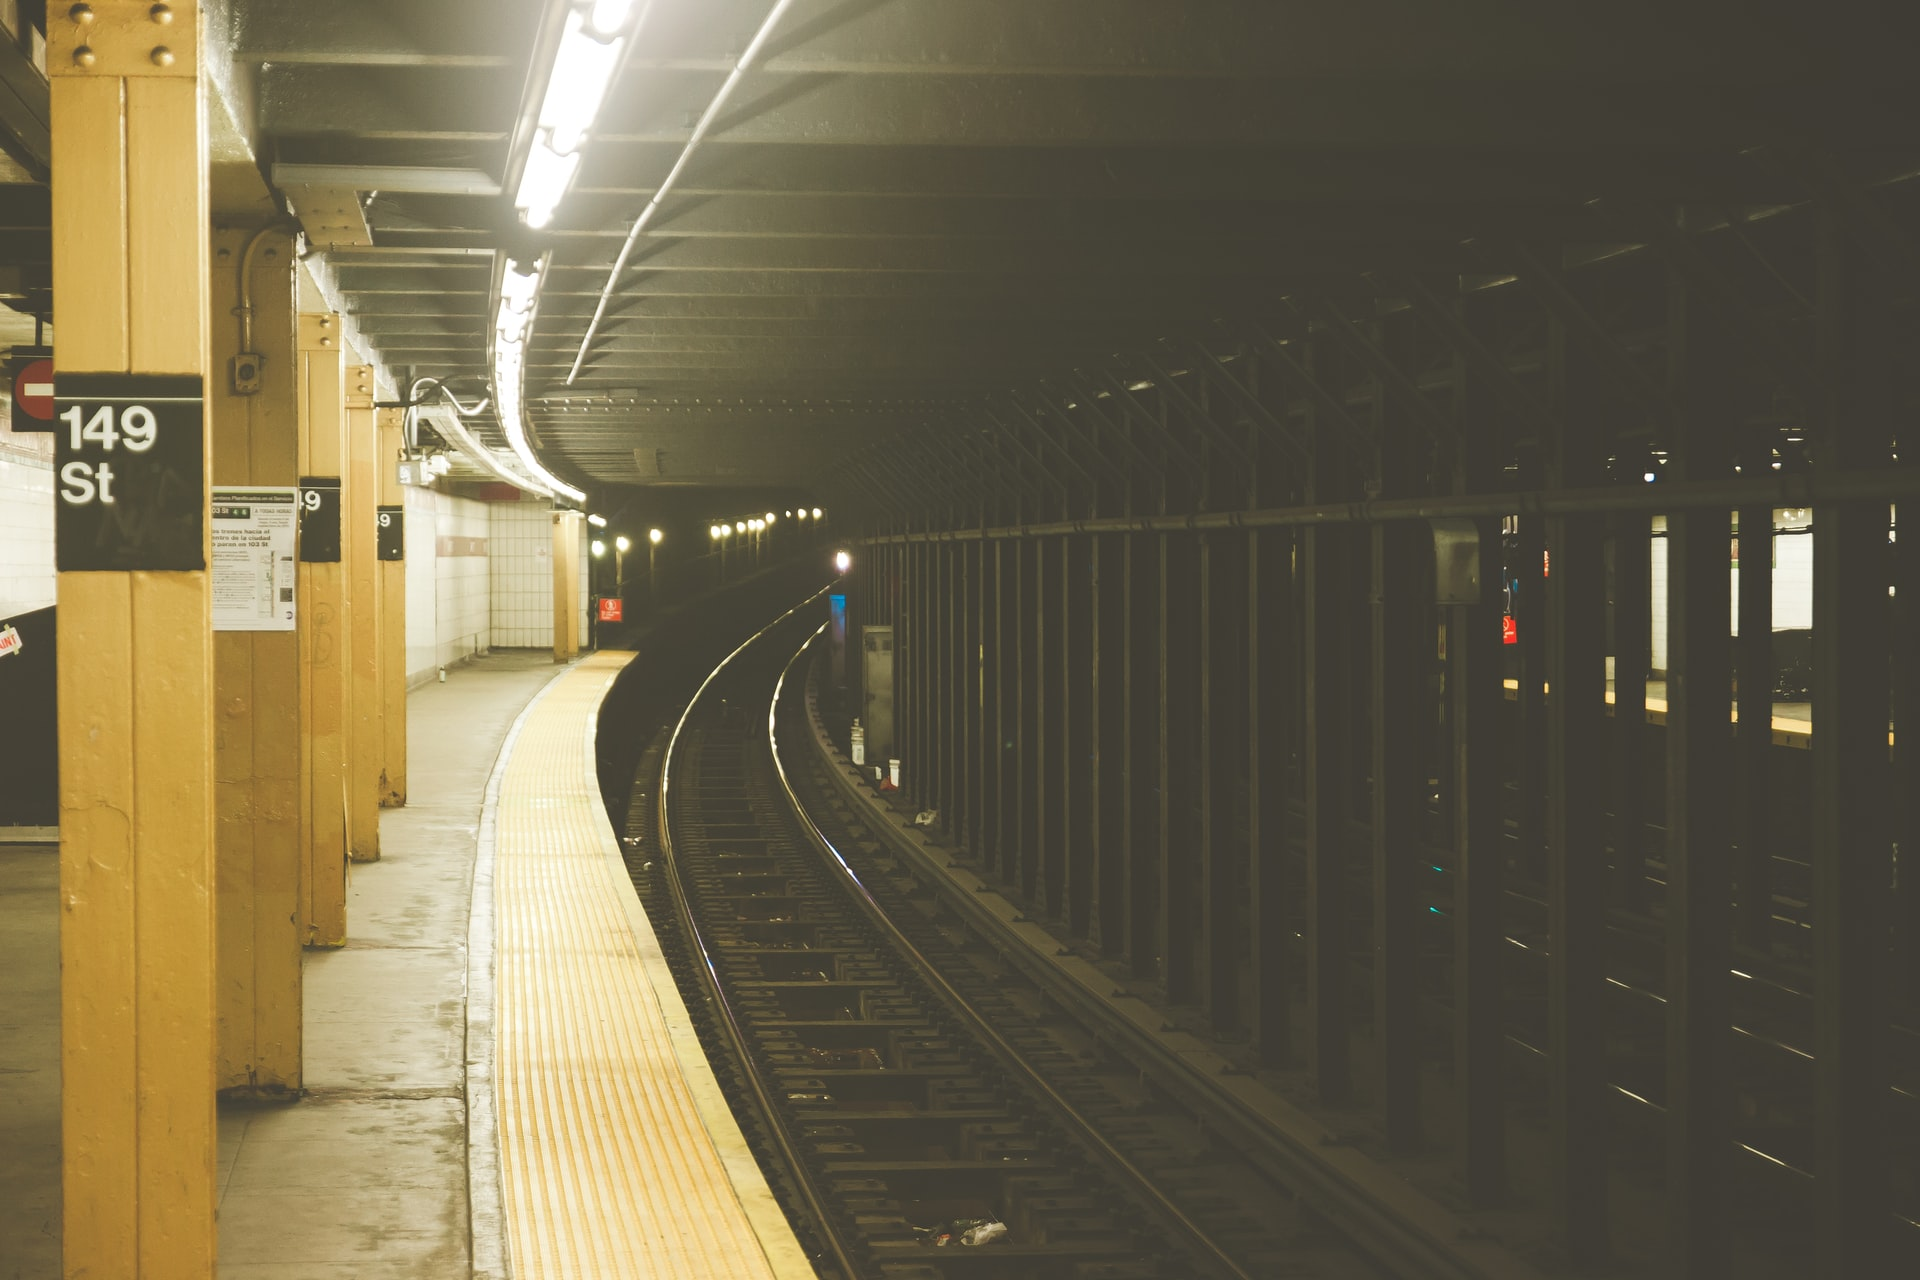 149th street subway